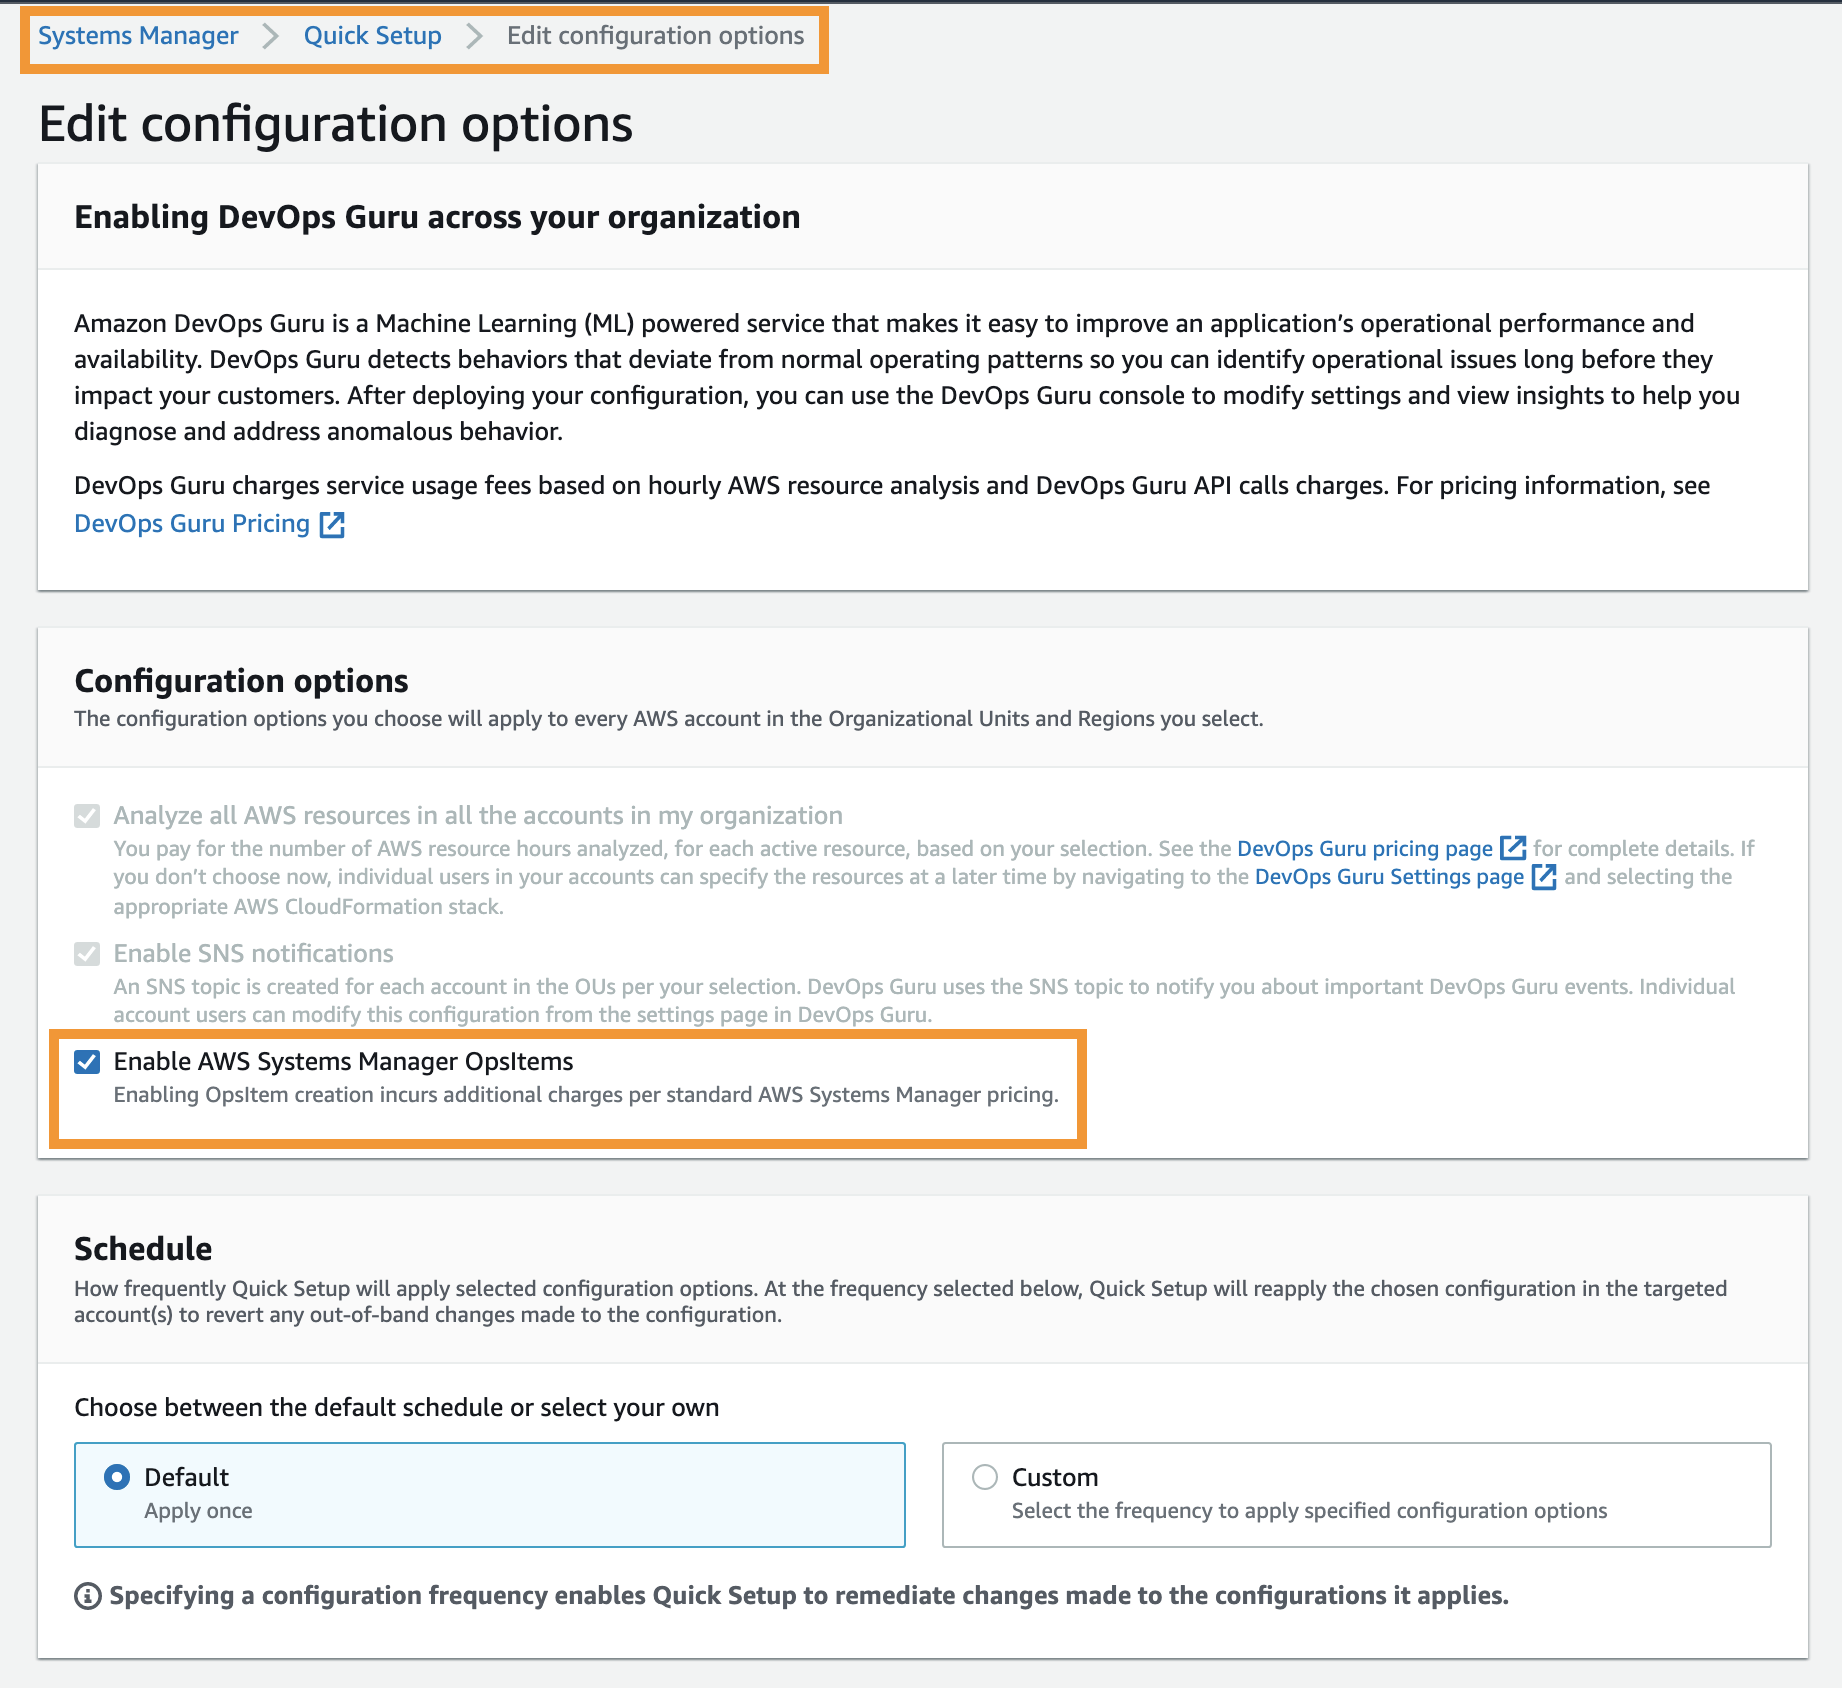 Under the Edit configuration options page, the option to enable Systems Manager OpsItem is selected